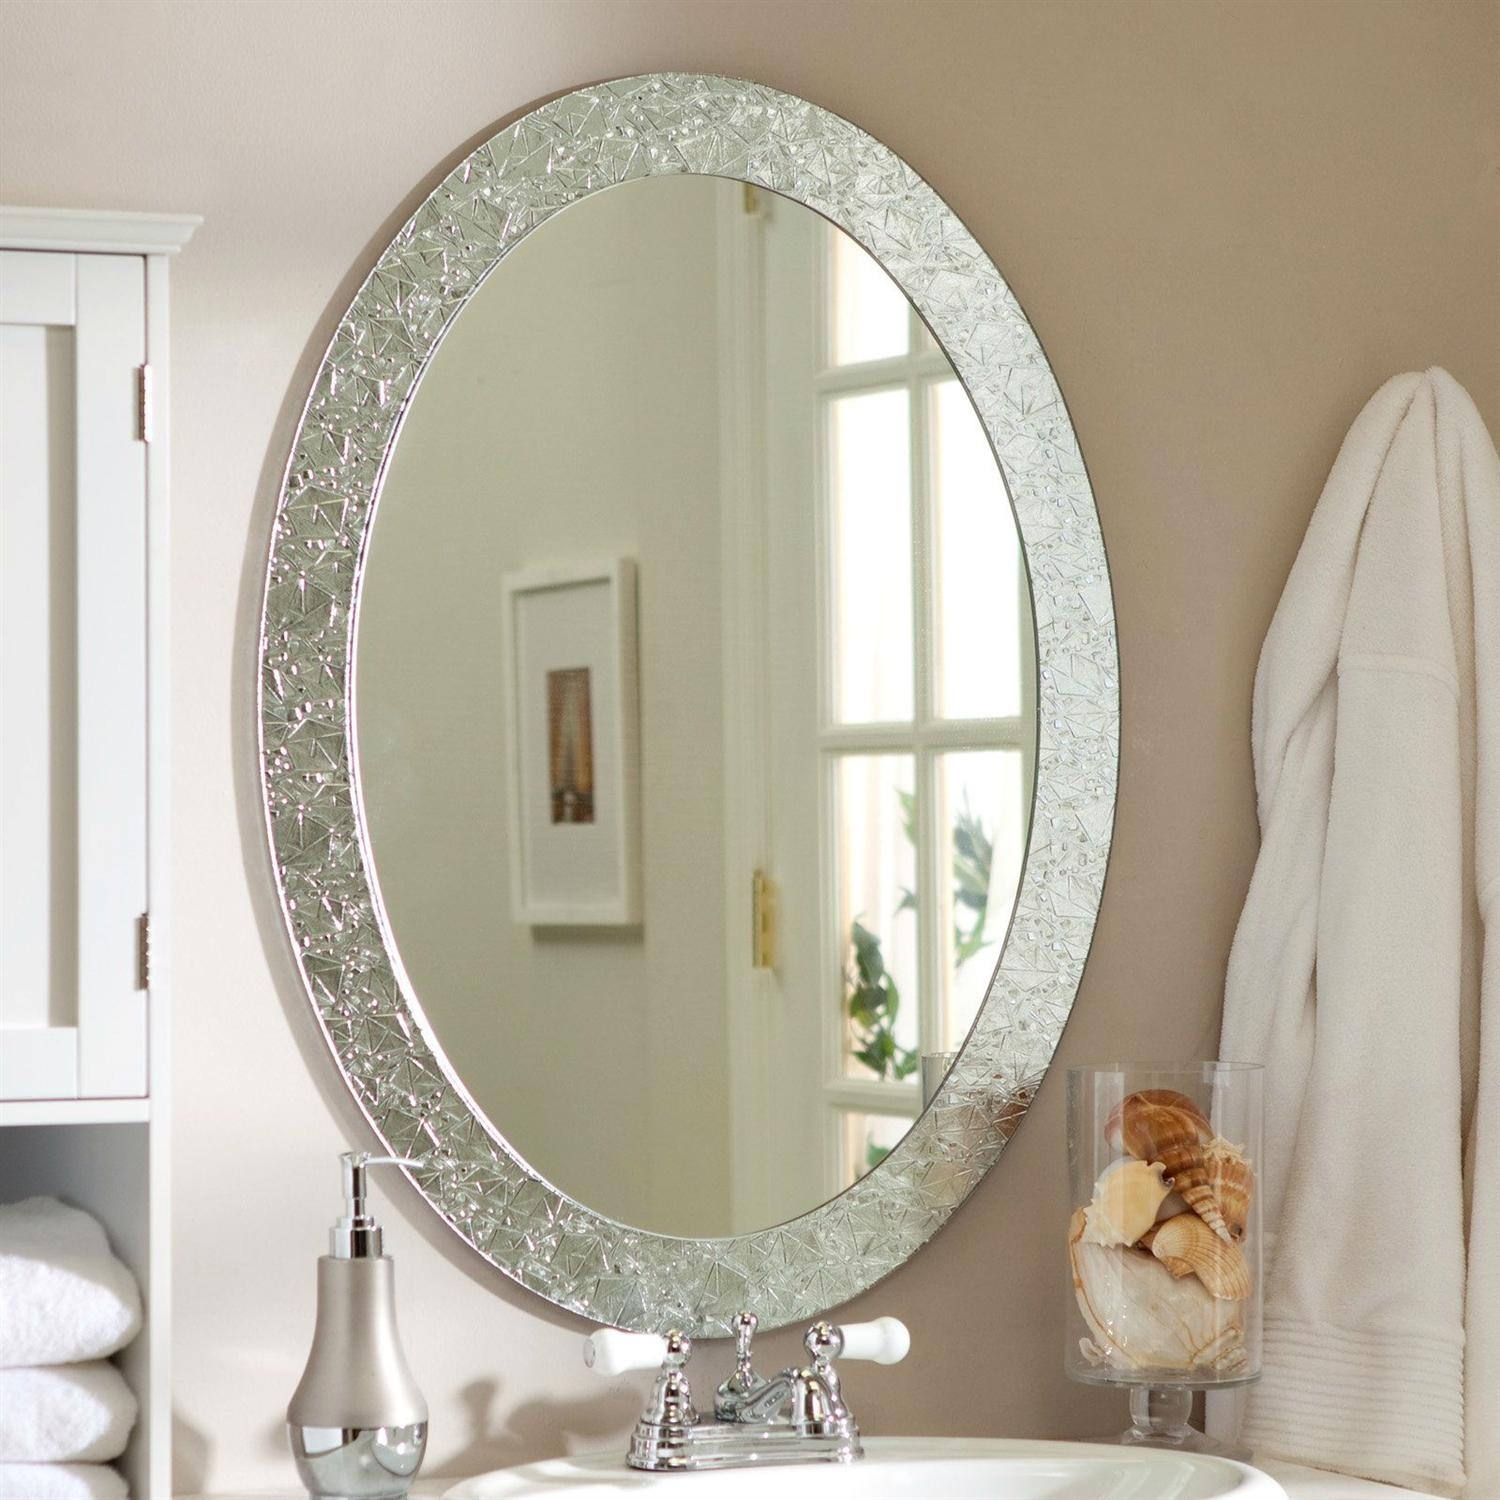 20 Collection of Decorative Round Mirrors  Mirror Ideas